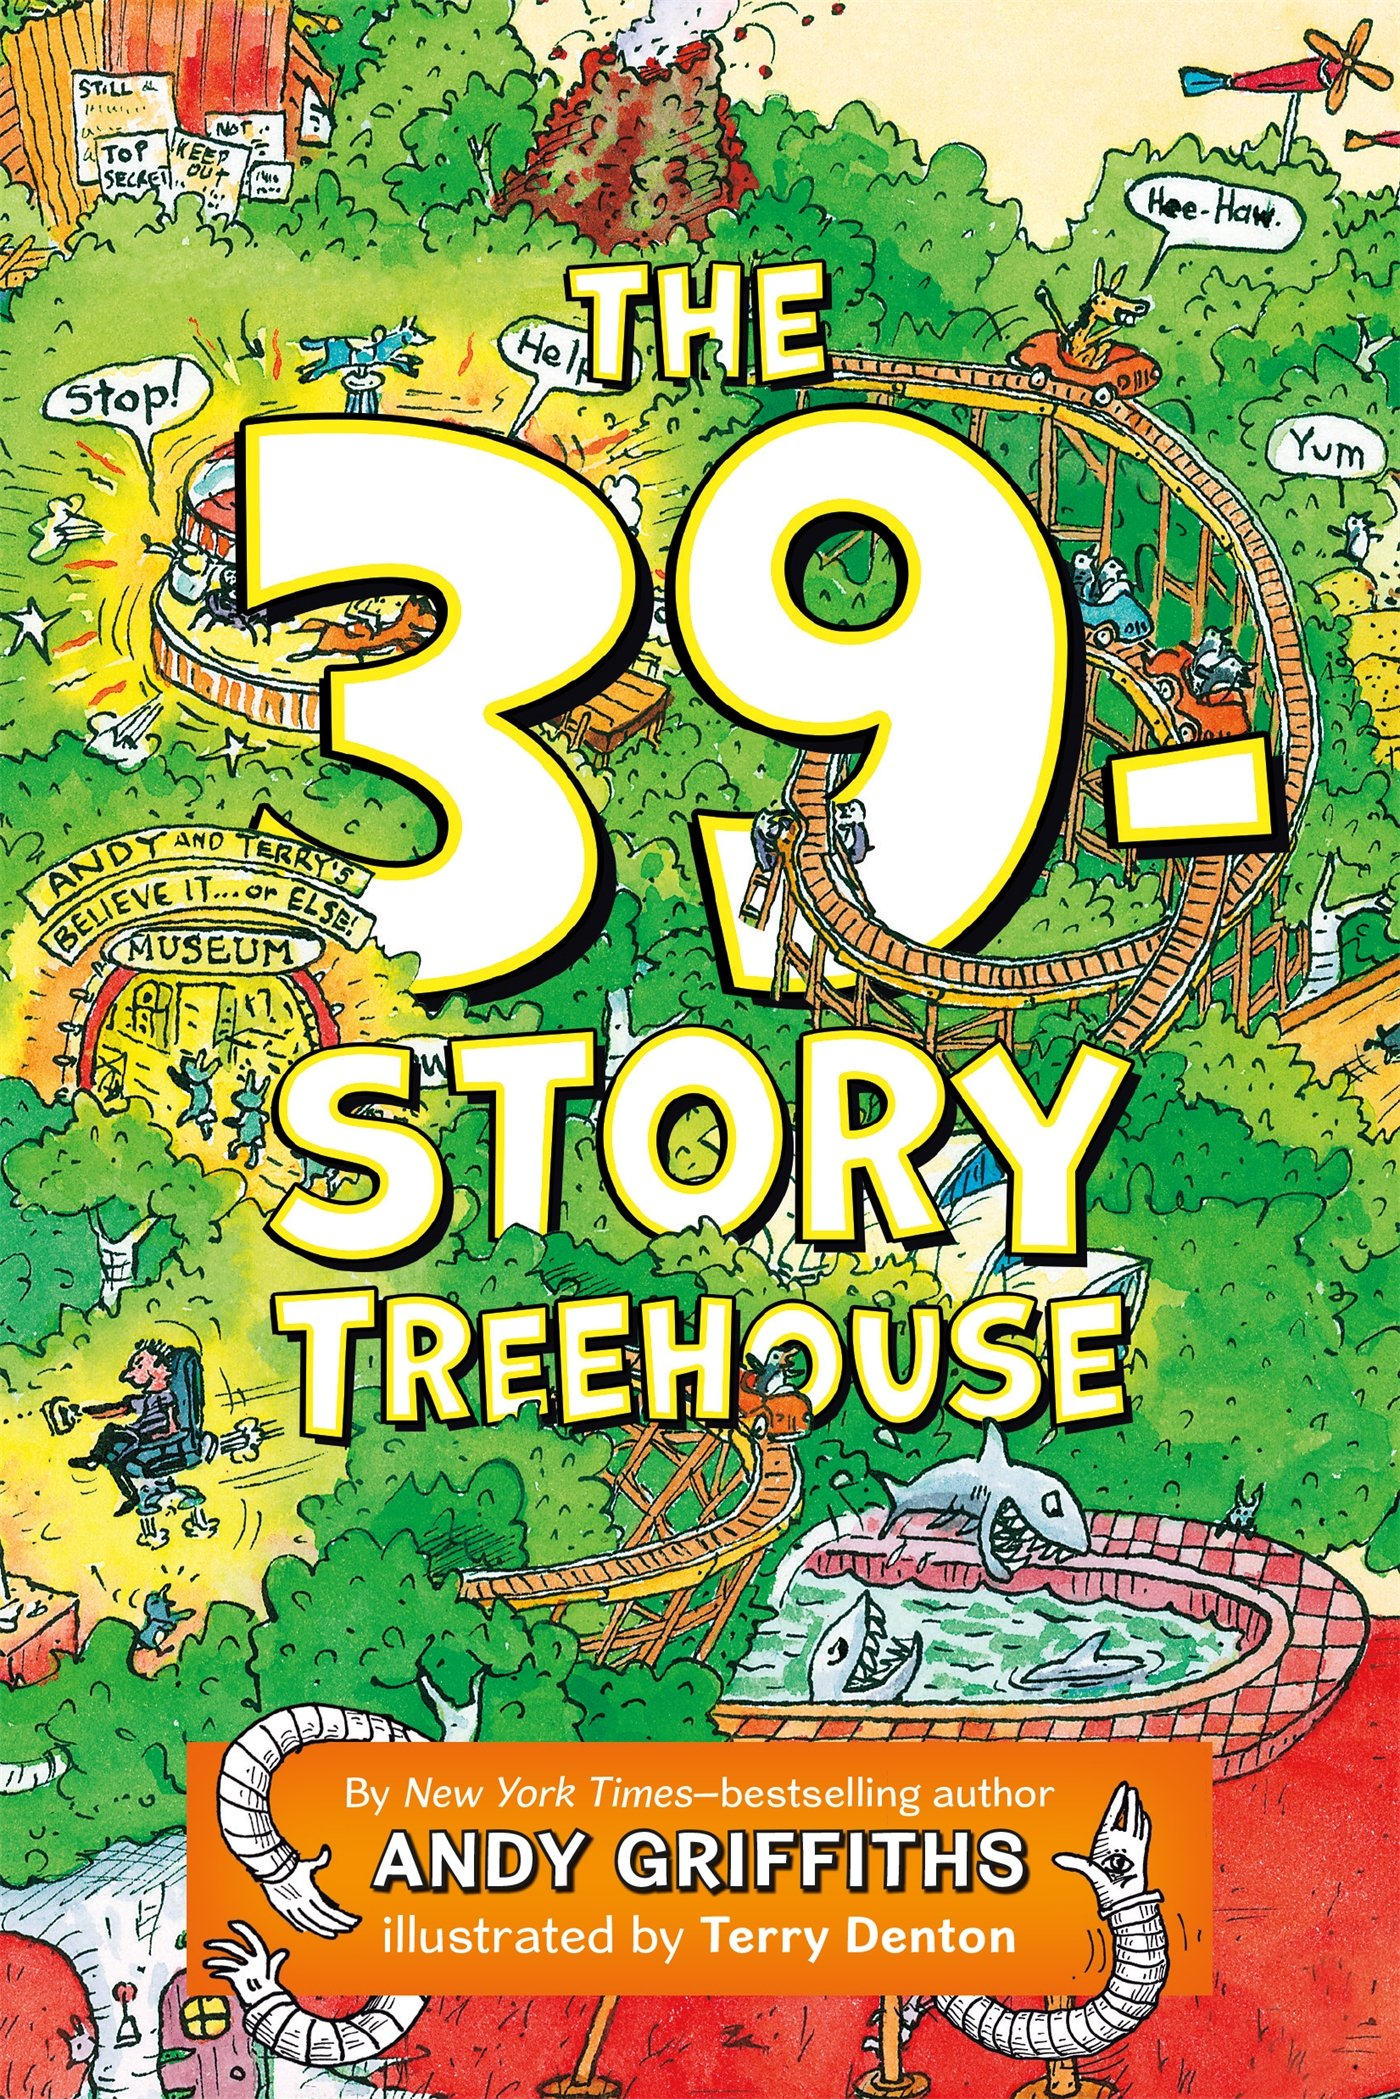 Andy Griffiths Treehouse Part - 42: The 39-Story Treehouse (Treehouse Books): Amazon.co.uk: Andy Griffiths:  9781250075116: Books